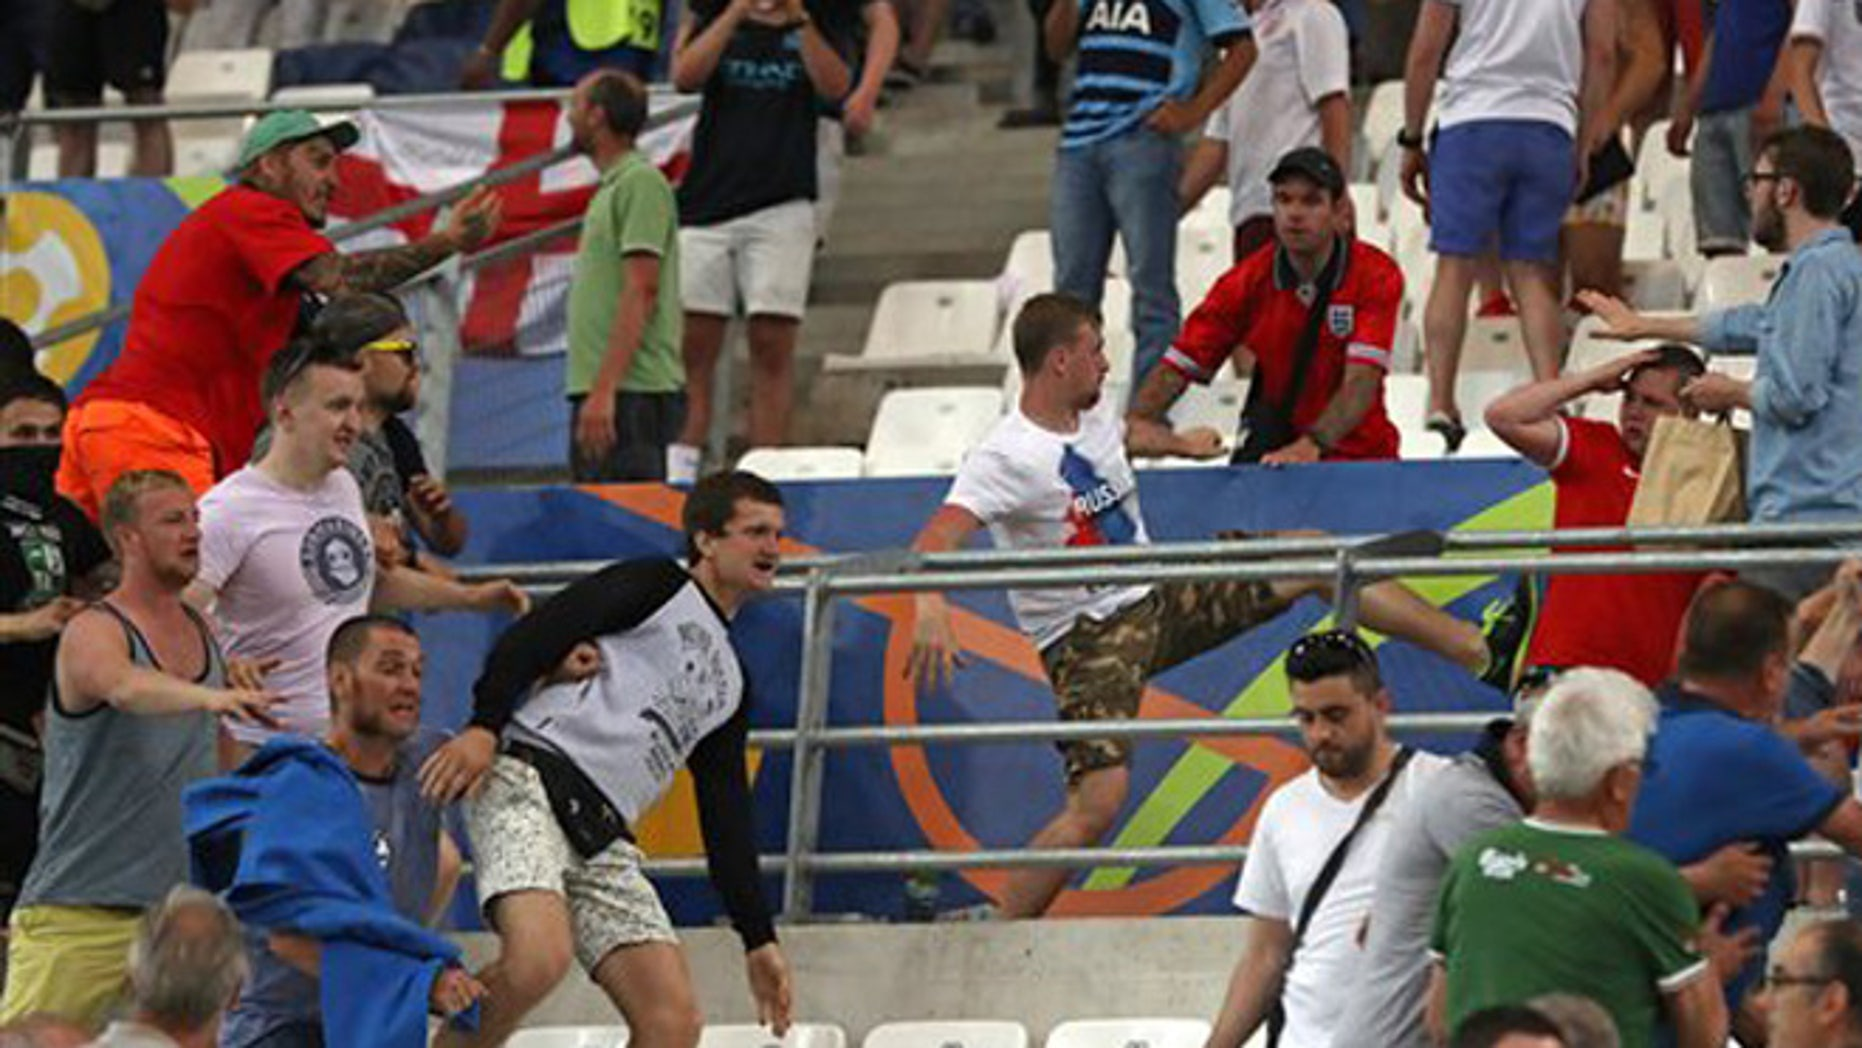 Russian supporters attack England fans at the end of the Euro 2016 Group B soccer match between England and Russia, at the Velodrome stadium in Marseille, France, Saturday, June 11, 2016.  (AP Photo/Thanassis Stavrakis)